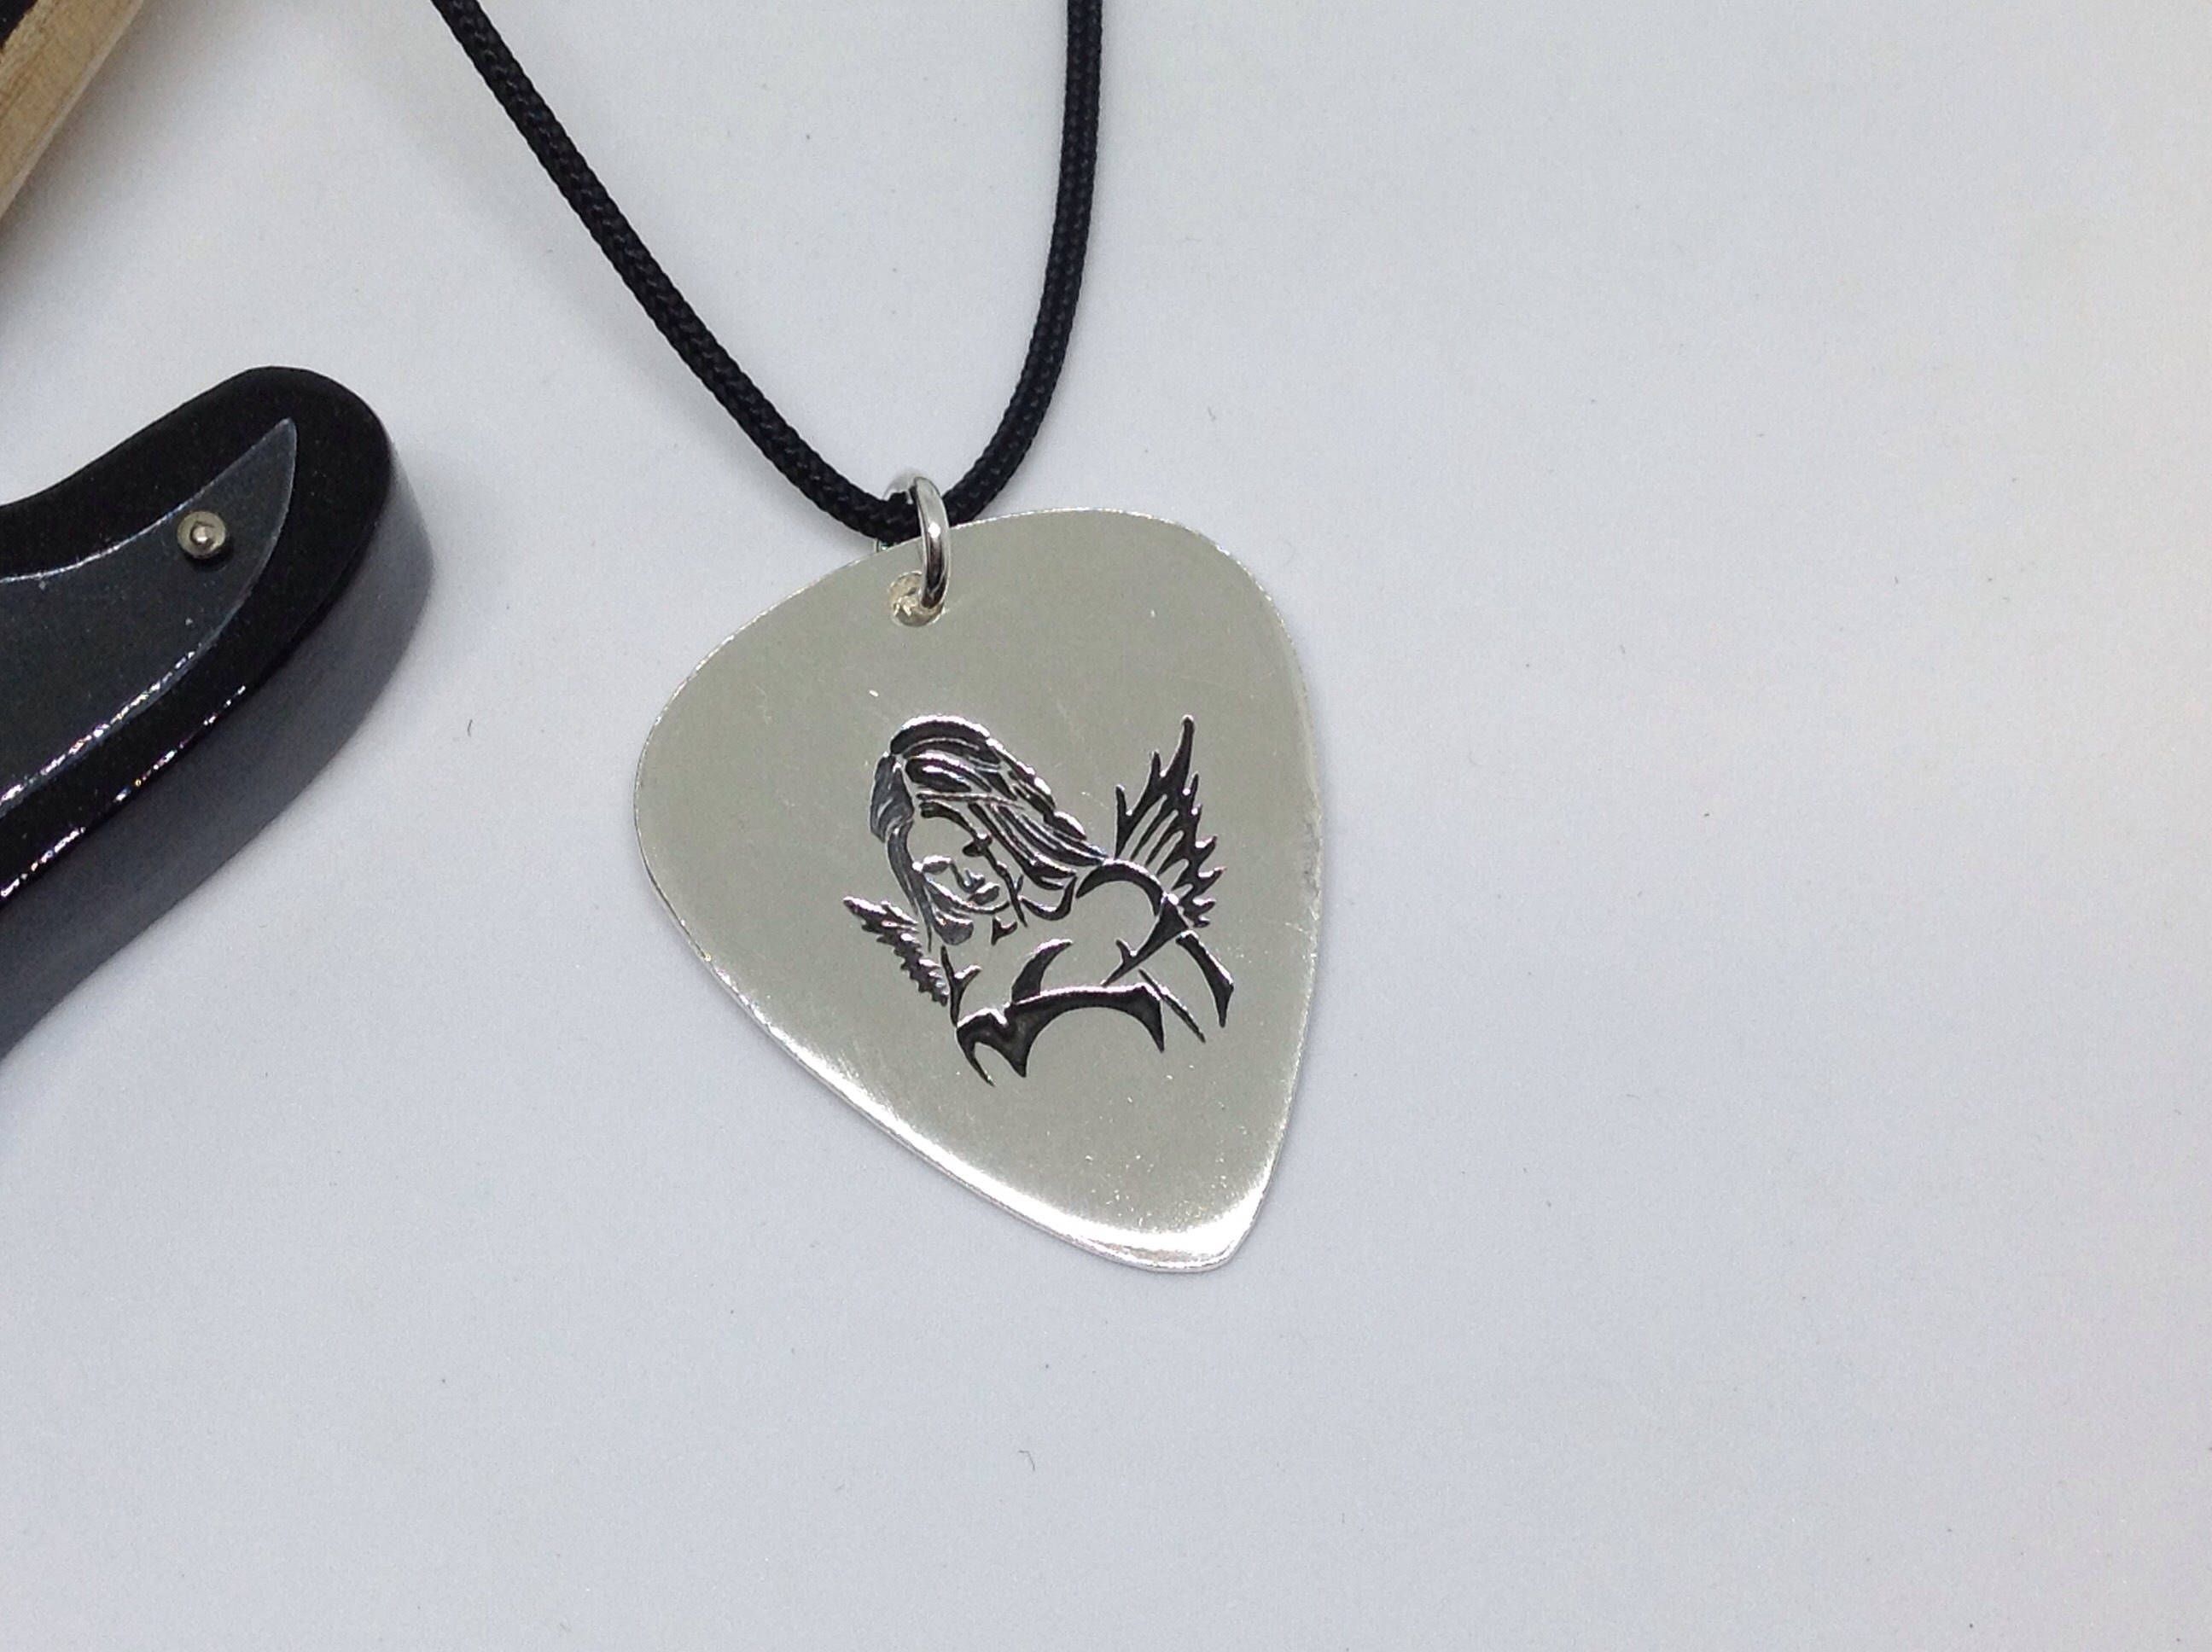 Unique silver guitar pick personalized silver guitar pick custom unique silver guitar pick personalized silver guitar pick custom silver rockers gift christmas gift for guitar player aloadofball Image collections